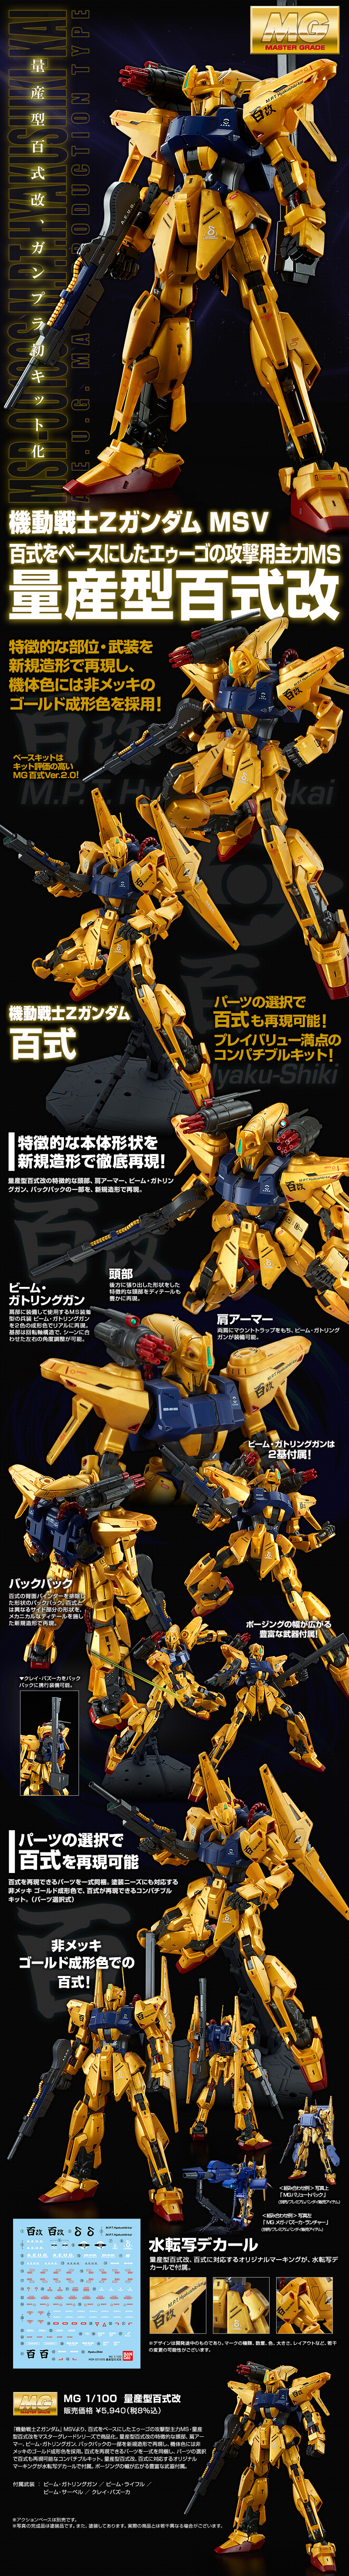 MG 1/100 MSR-00100S 量産型百式改 [Hyaku Shiki Kai Mass Production Type] 公式商品説明(画像)